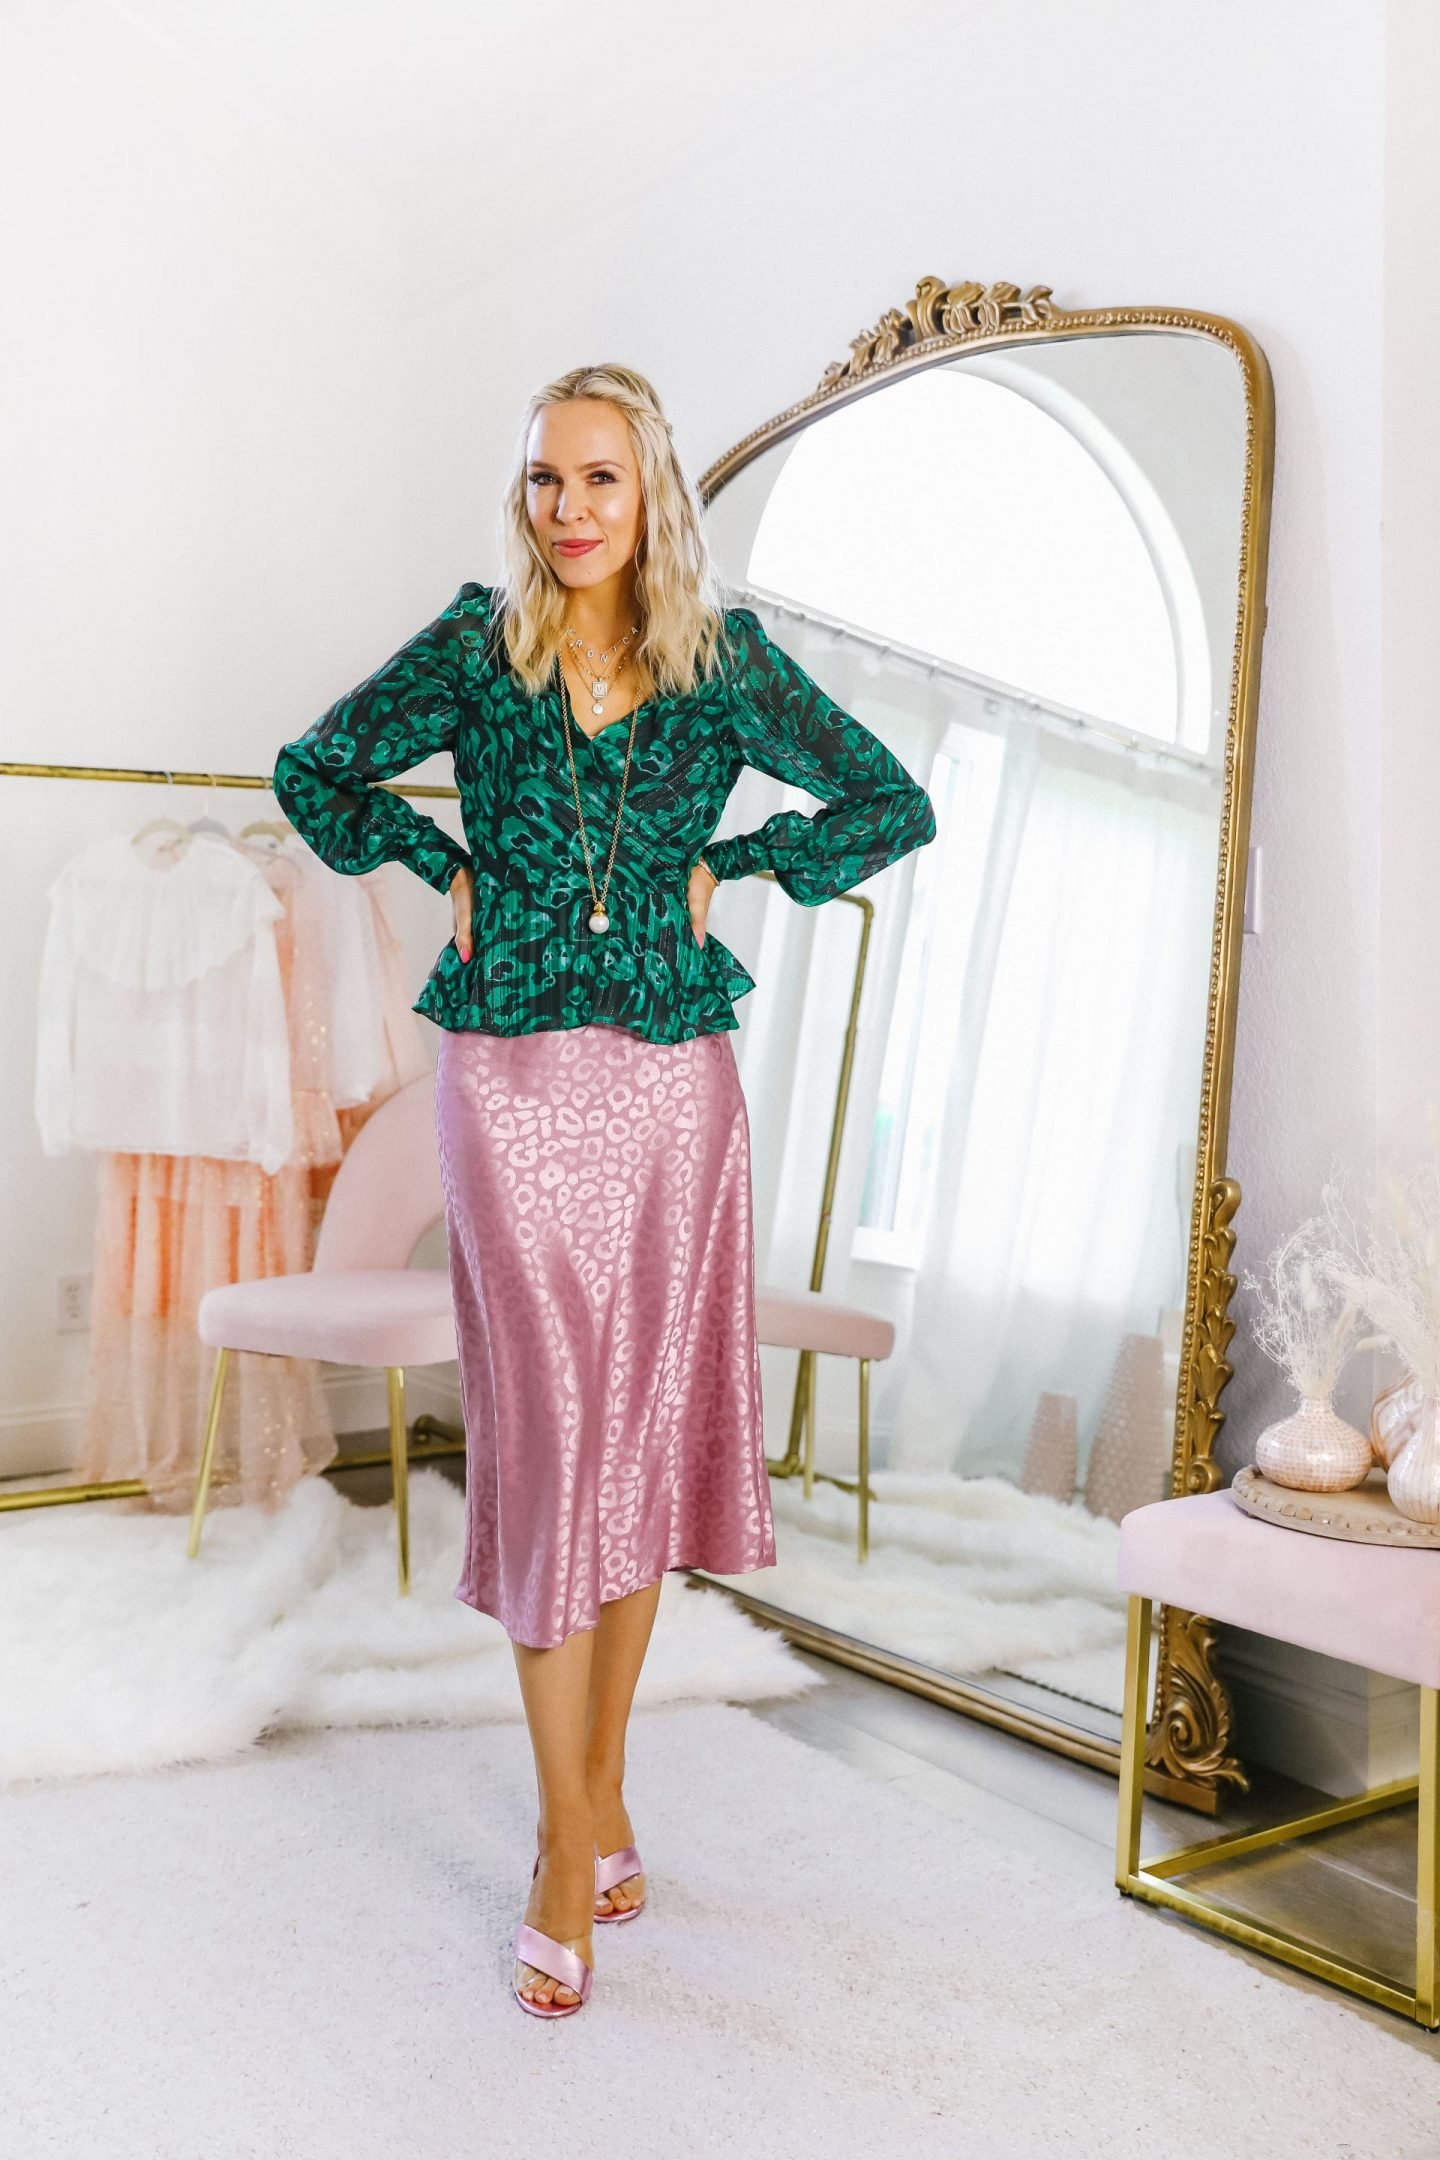 ReNamed skirt Shopbop, 5 ways to style a satin skirt, featured by top San Francisco blogger Lombard and Fifth.